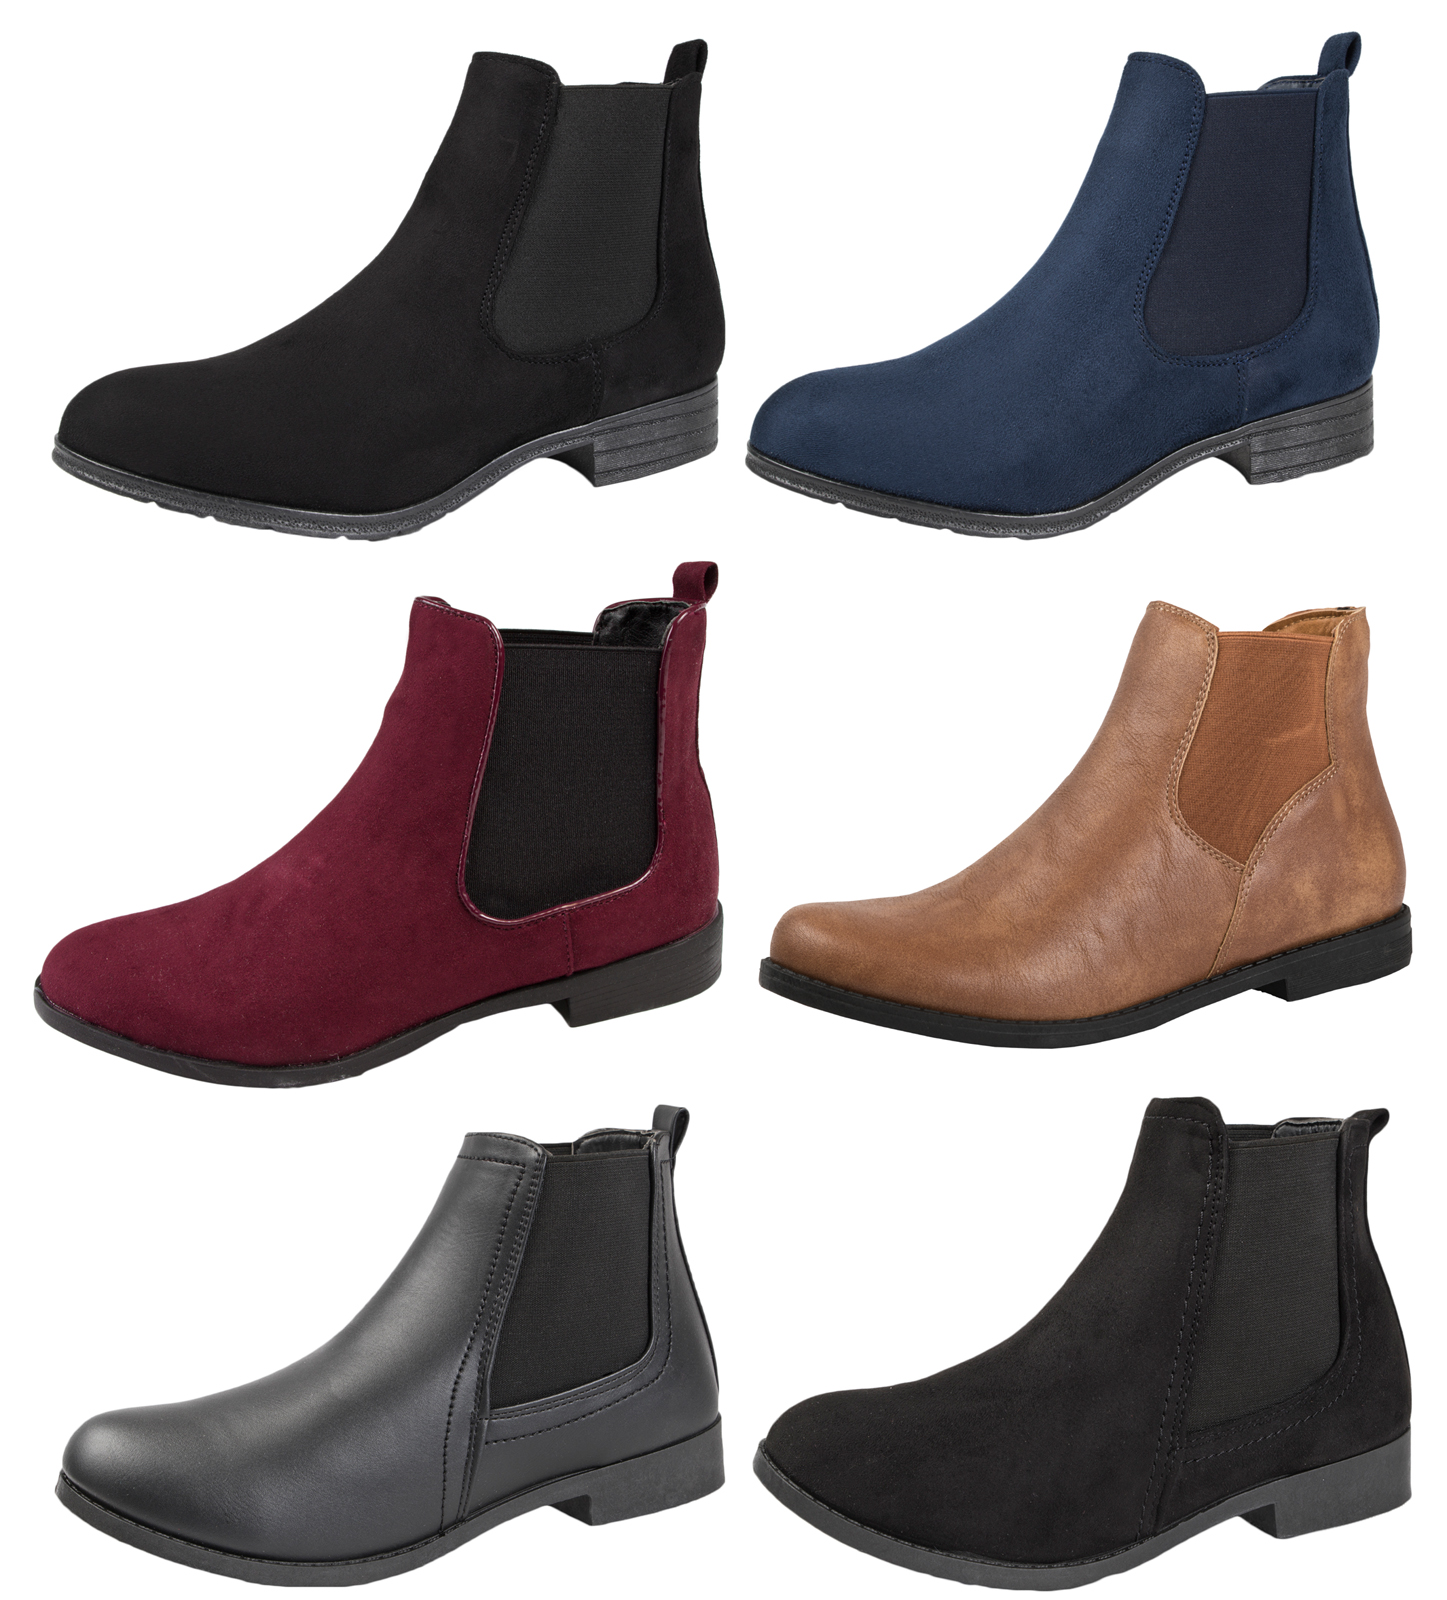 Womens Faux Leather Suede Flat Low Gusset Chelsea Ankle Boots Winter Shoes Size